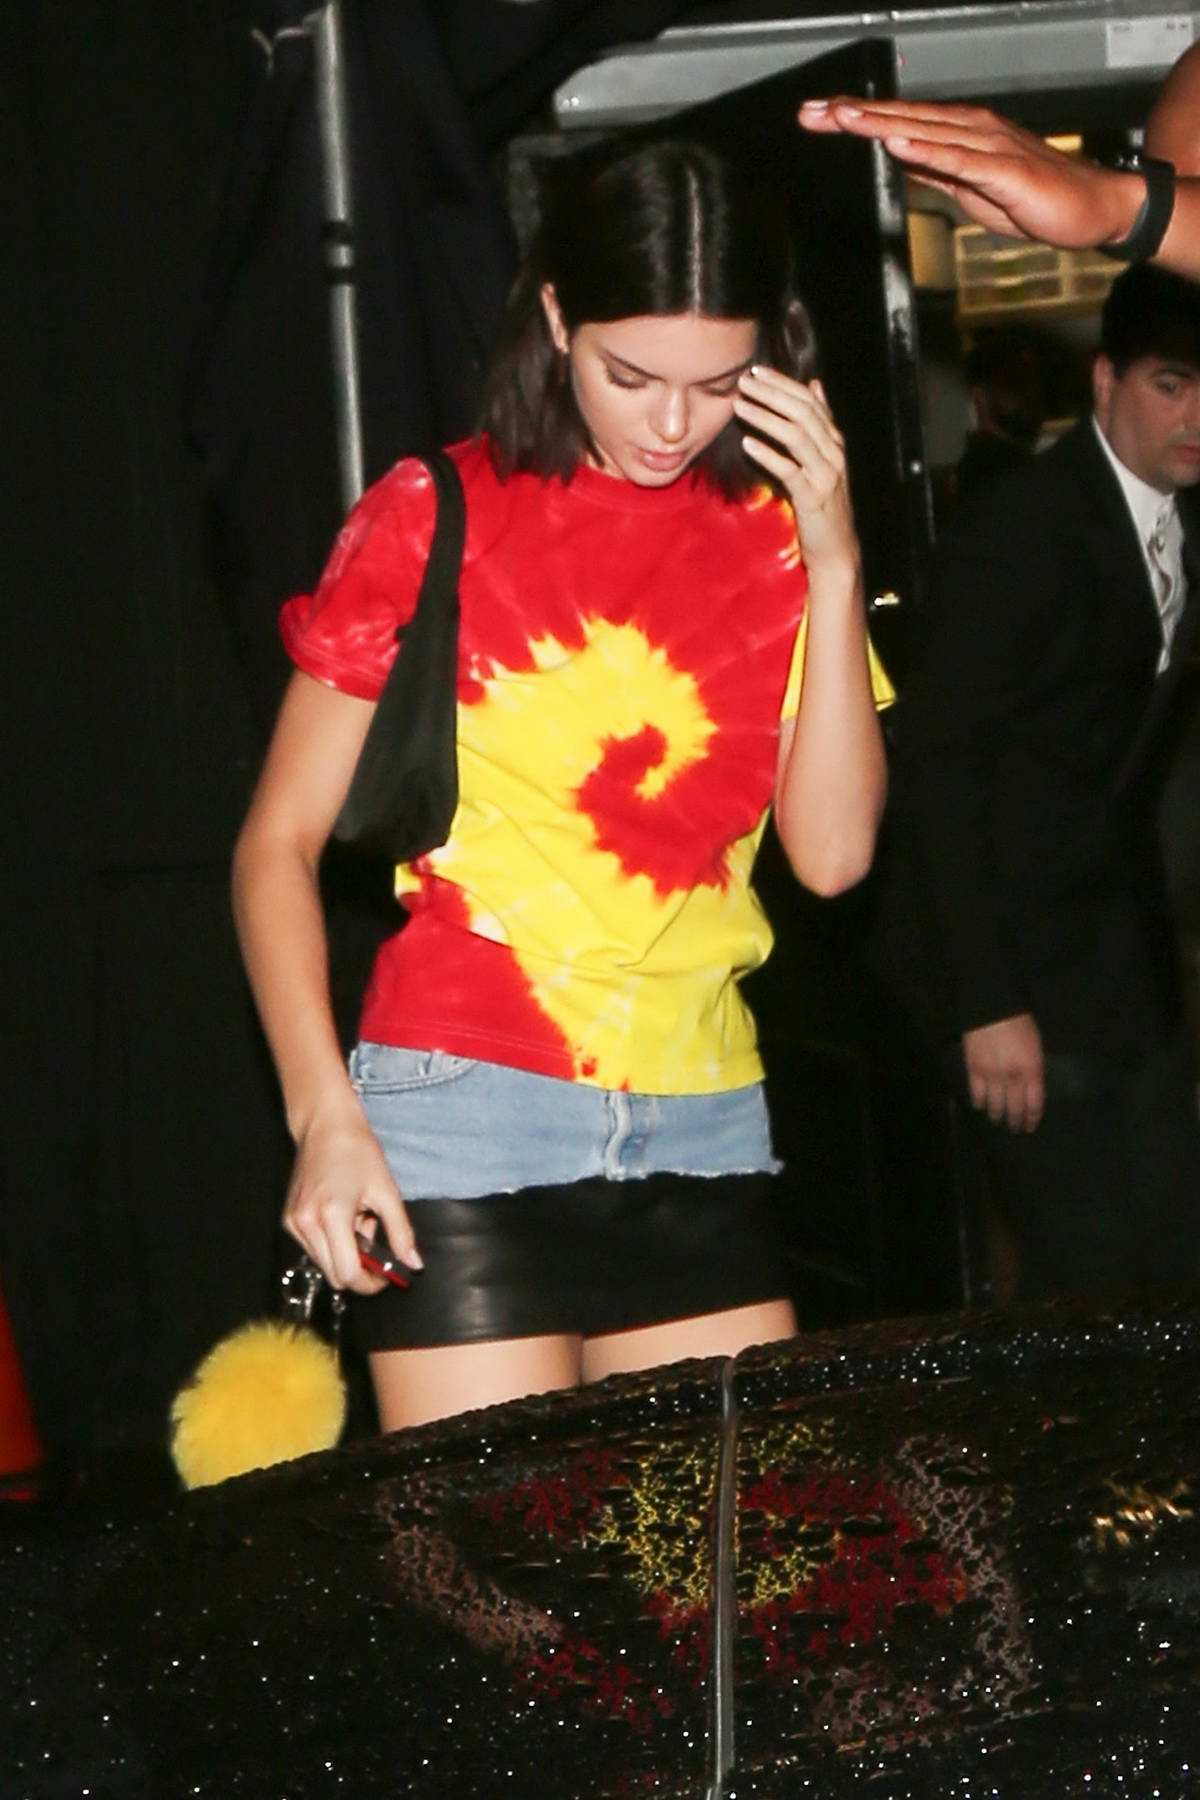 Kendall Jenner spotted in a red and yellow top while she leaves The Nice Guy in West Hollywood, Los Angeles